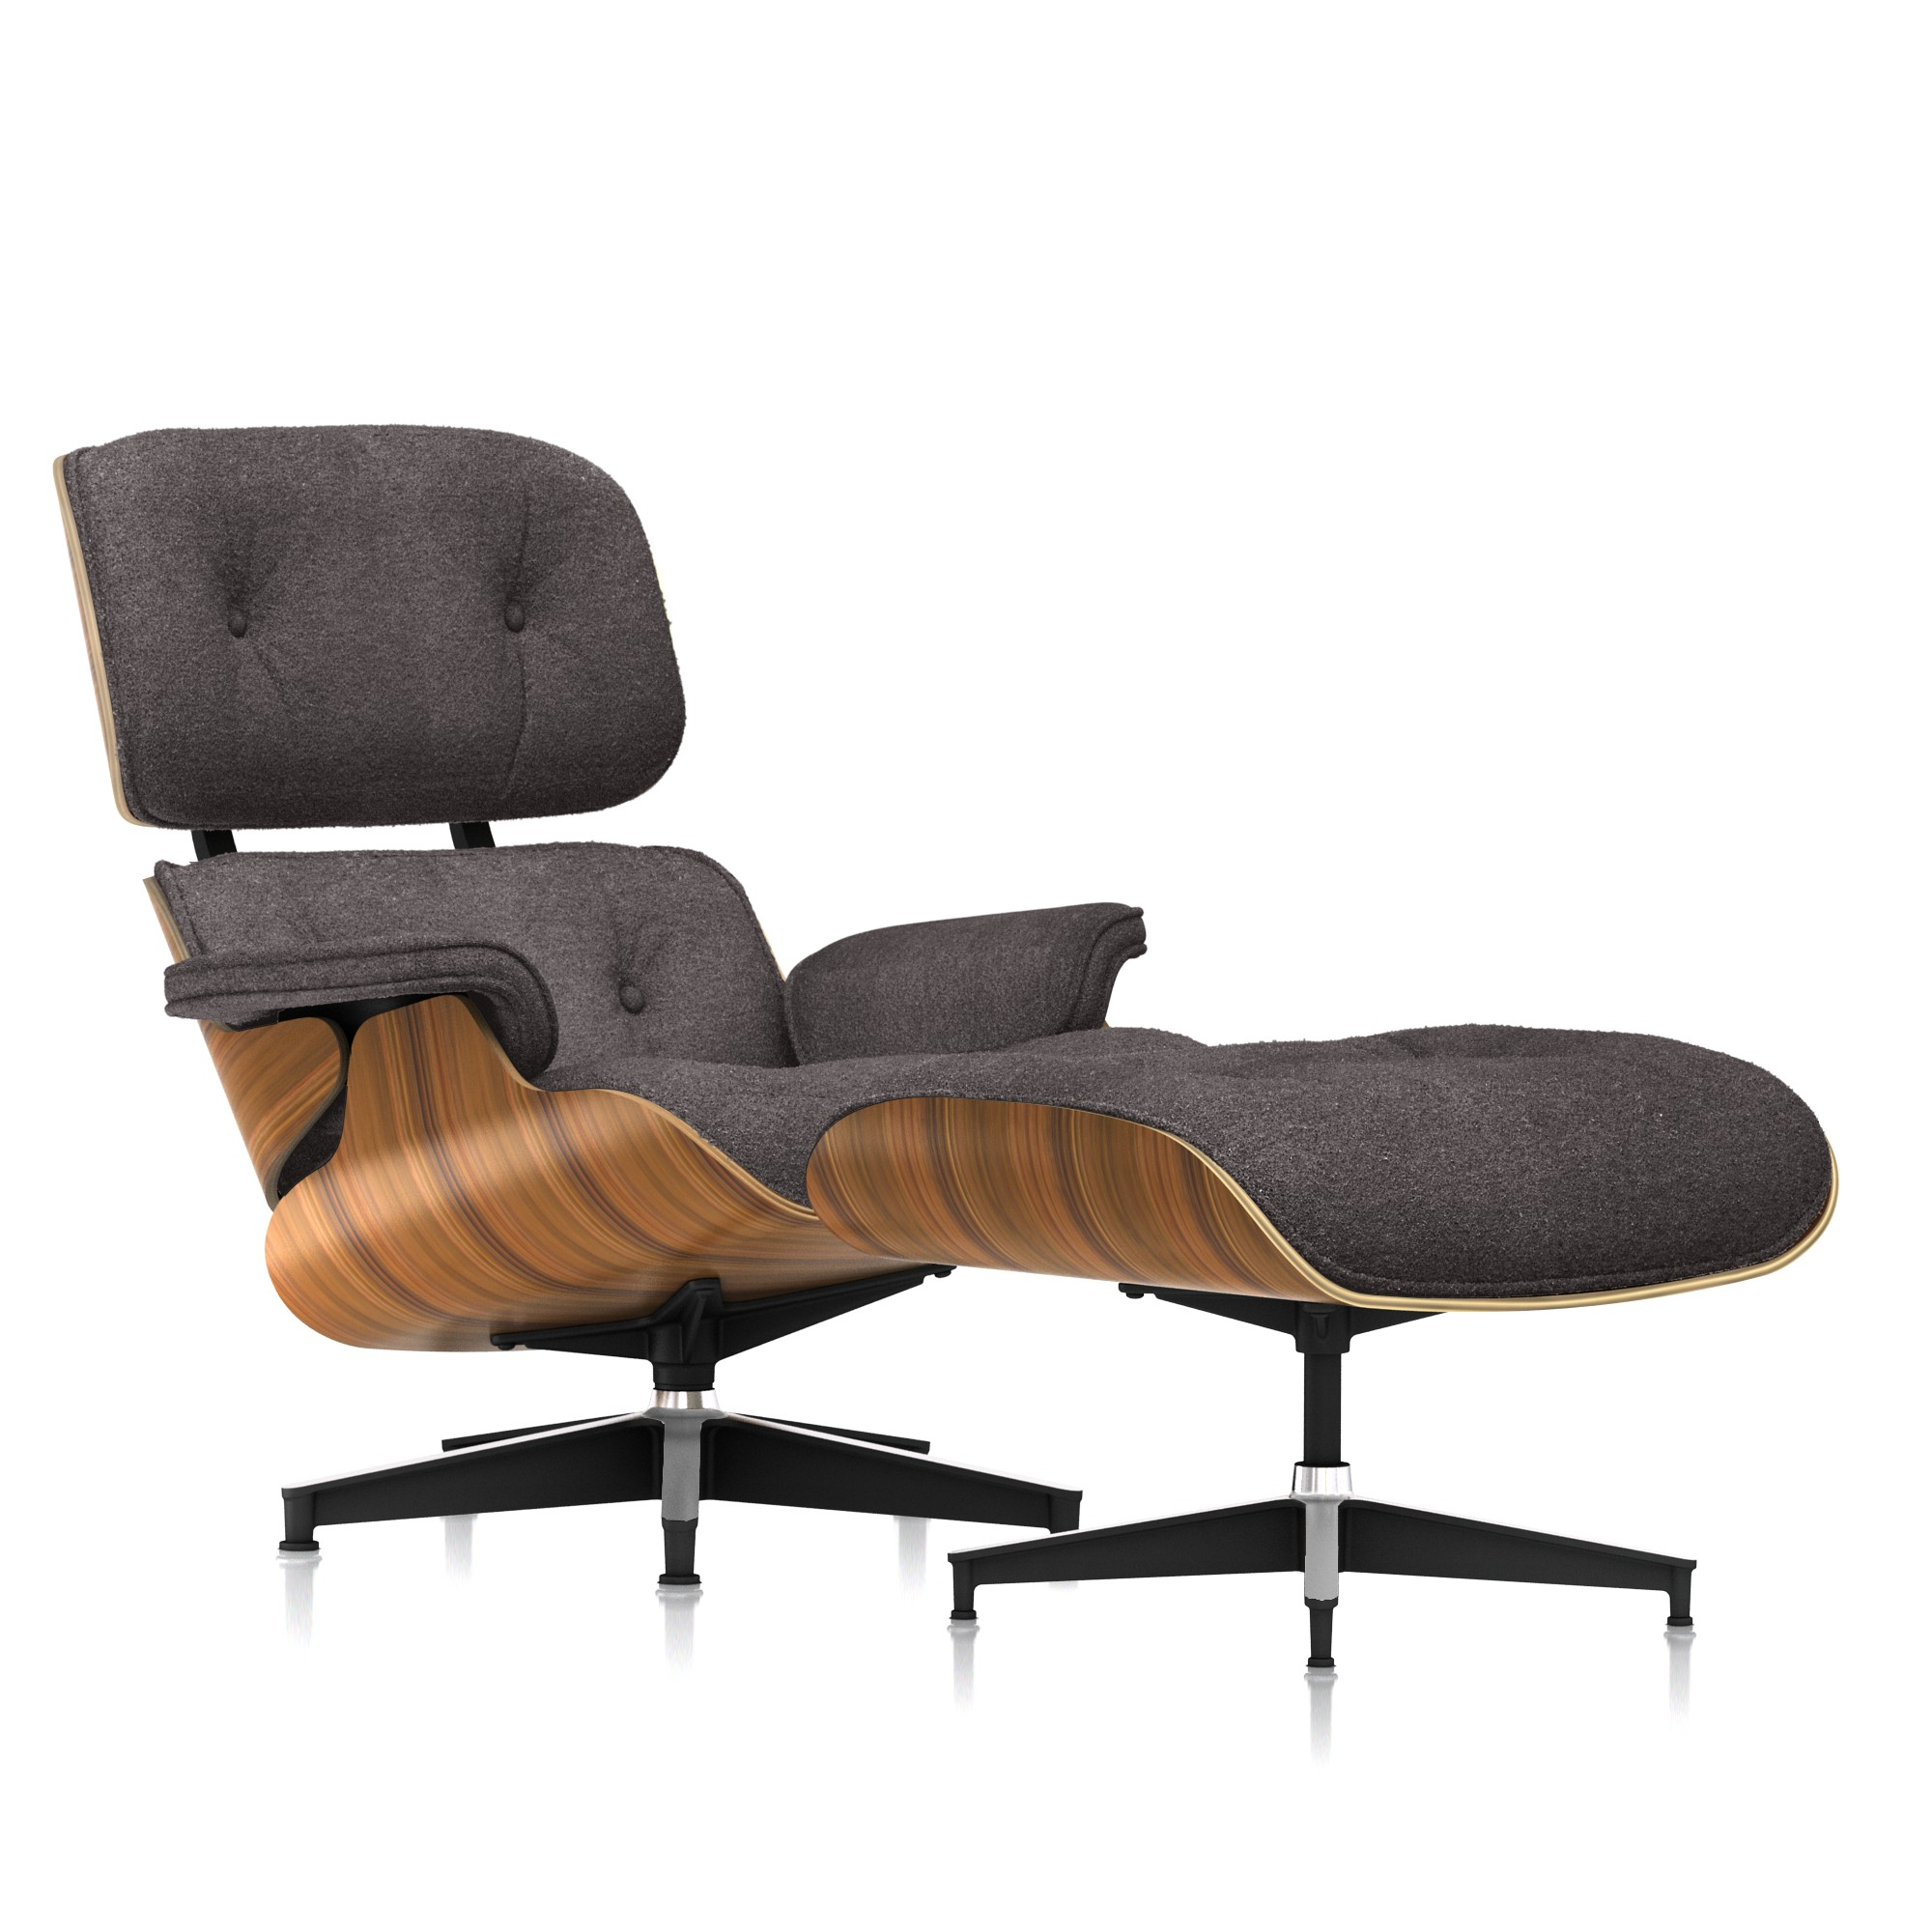 Eames Lounge Chair and Ottoman in Lupine Mohair Supreme Tall by Herman Miller